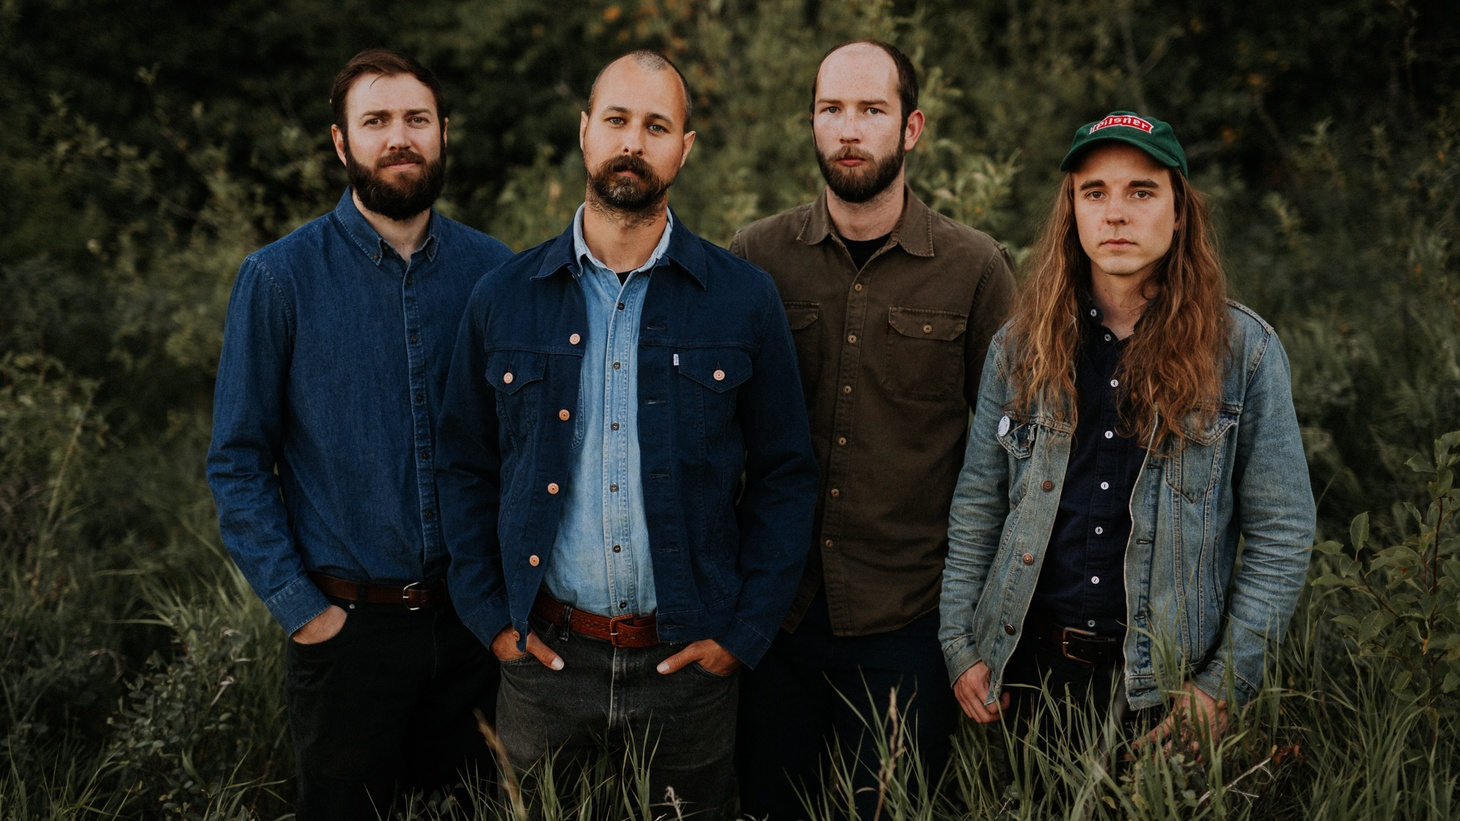 Singer-songwriter Andy Shauf co-founded Foxwarren with three friends from college in the late 2000s. Their self-titled album draws some of its influence from The Band and Paul Simon and is buoyed by Andy's delicate vocals and spacious sounds.